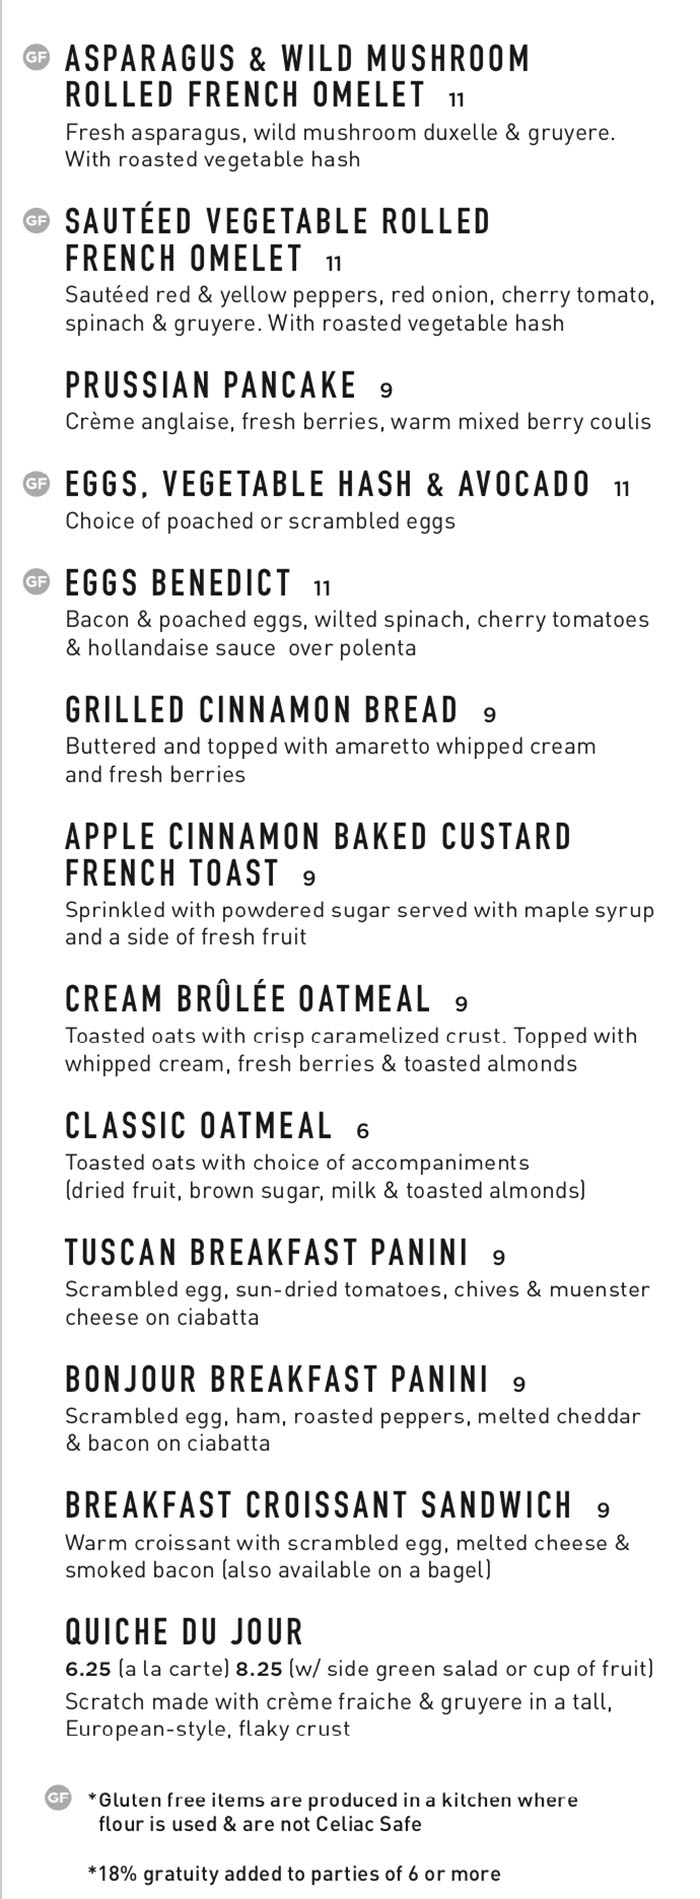 Gourmandise breakfast menu - savory